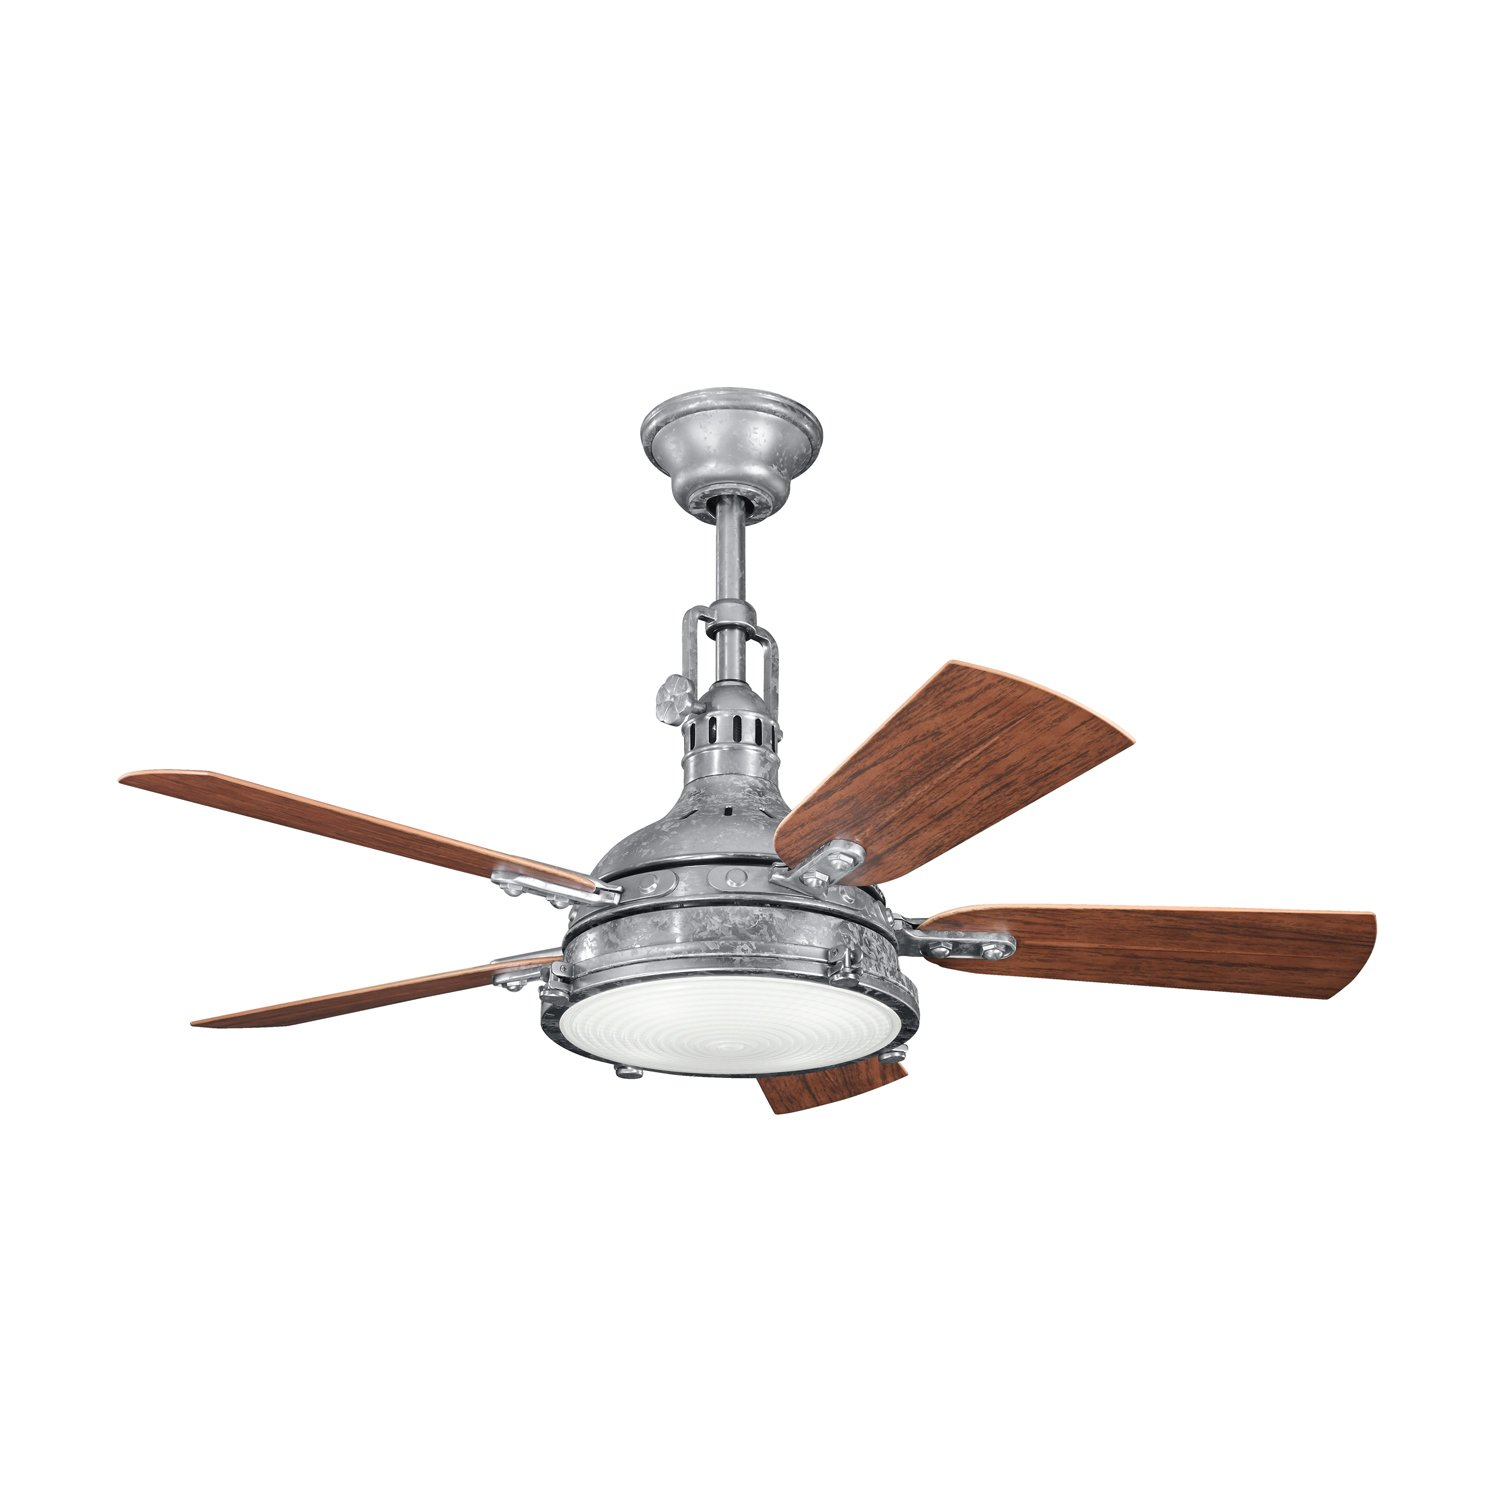 products inch htm ceilings island finish bronze fans ceiling store light honeywell fan palm